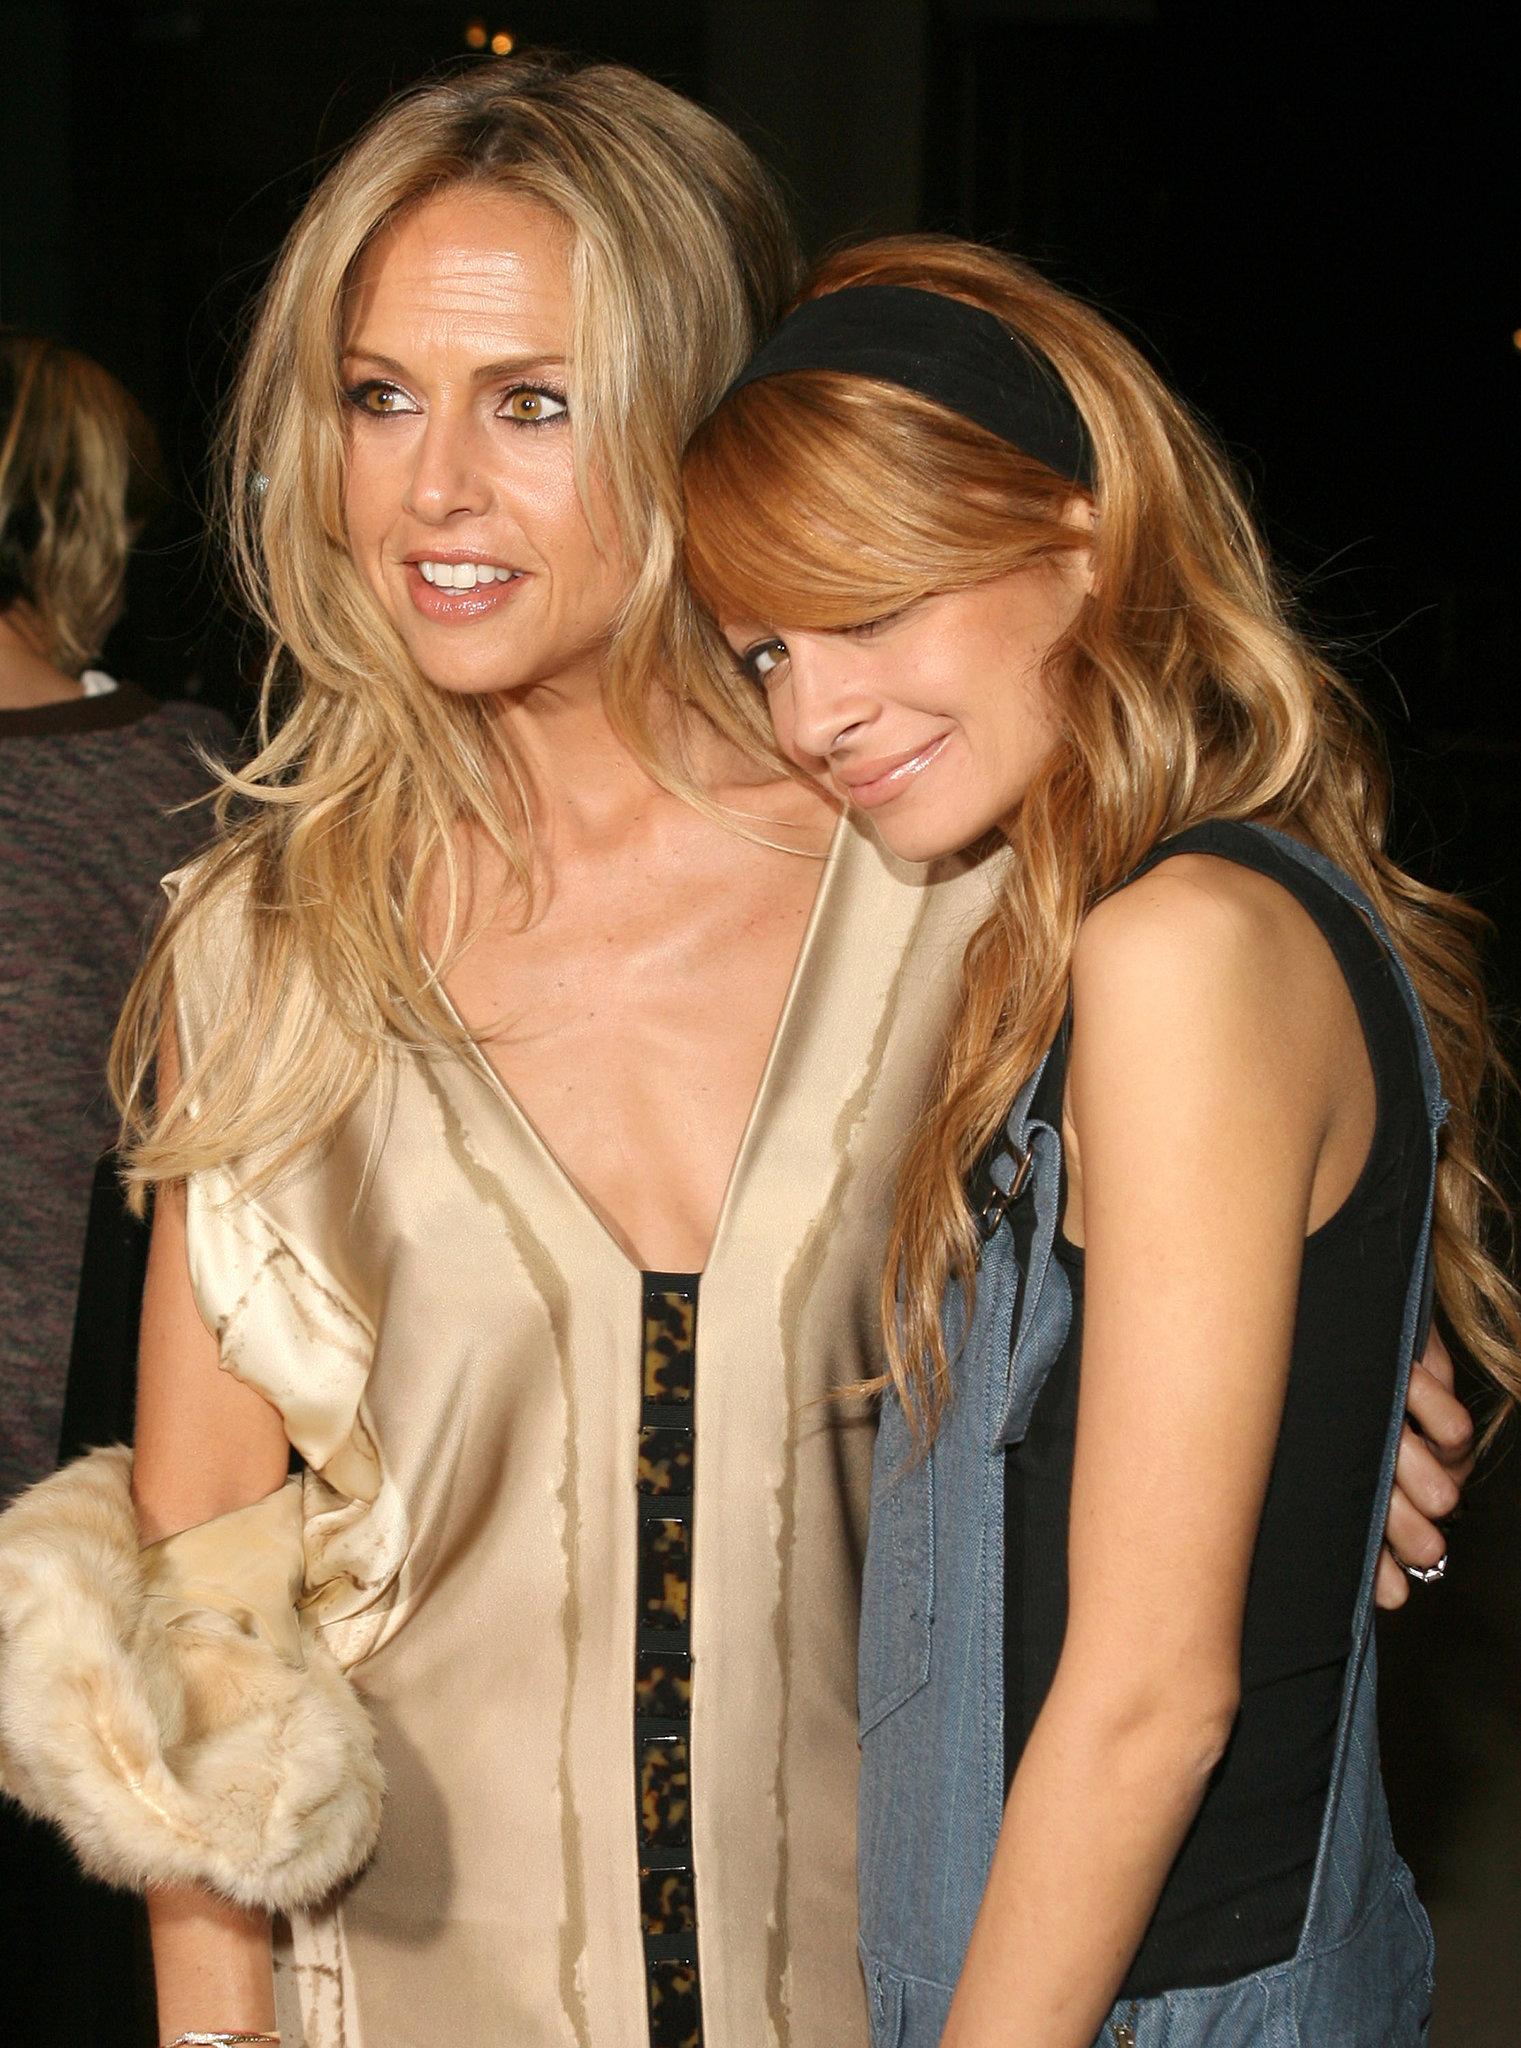 Nicole joined Rachel Zoe at a cocktail party for designer Charlotte Ronson in LA back in October 2006.